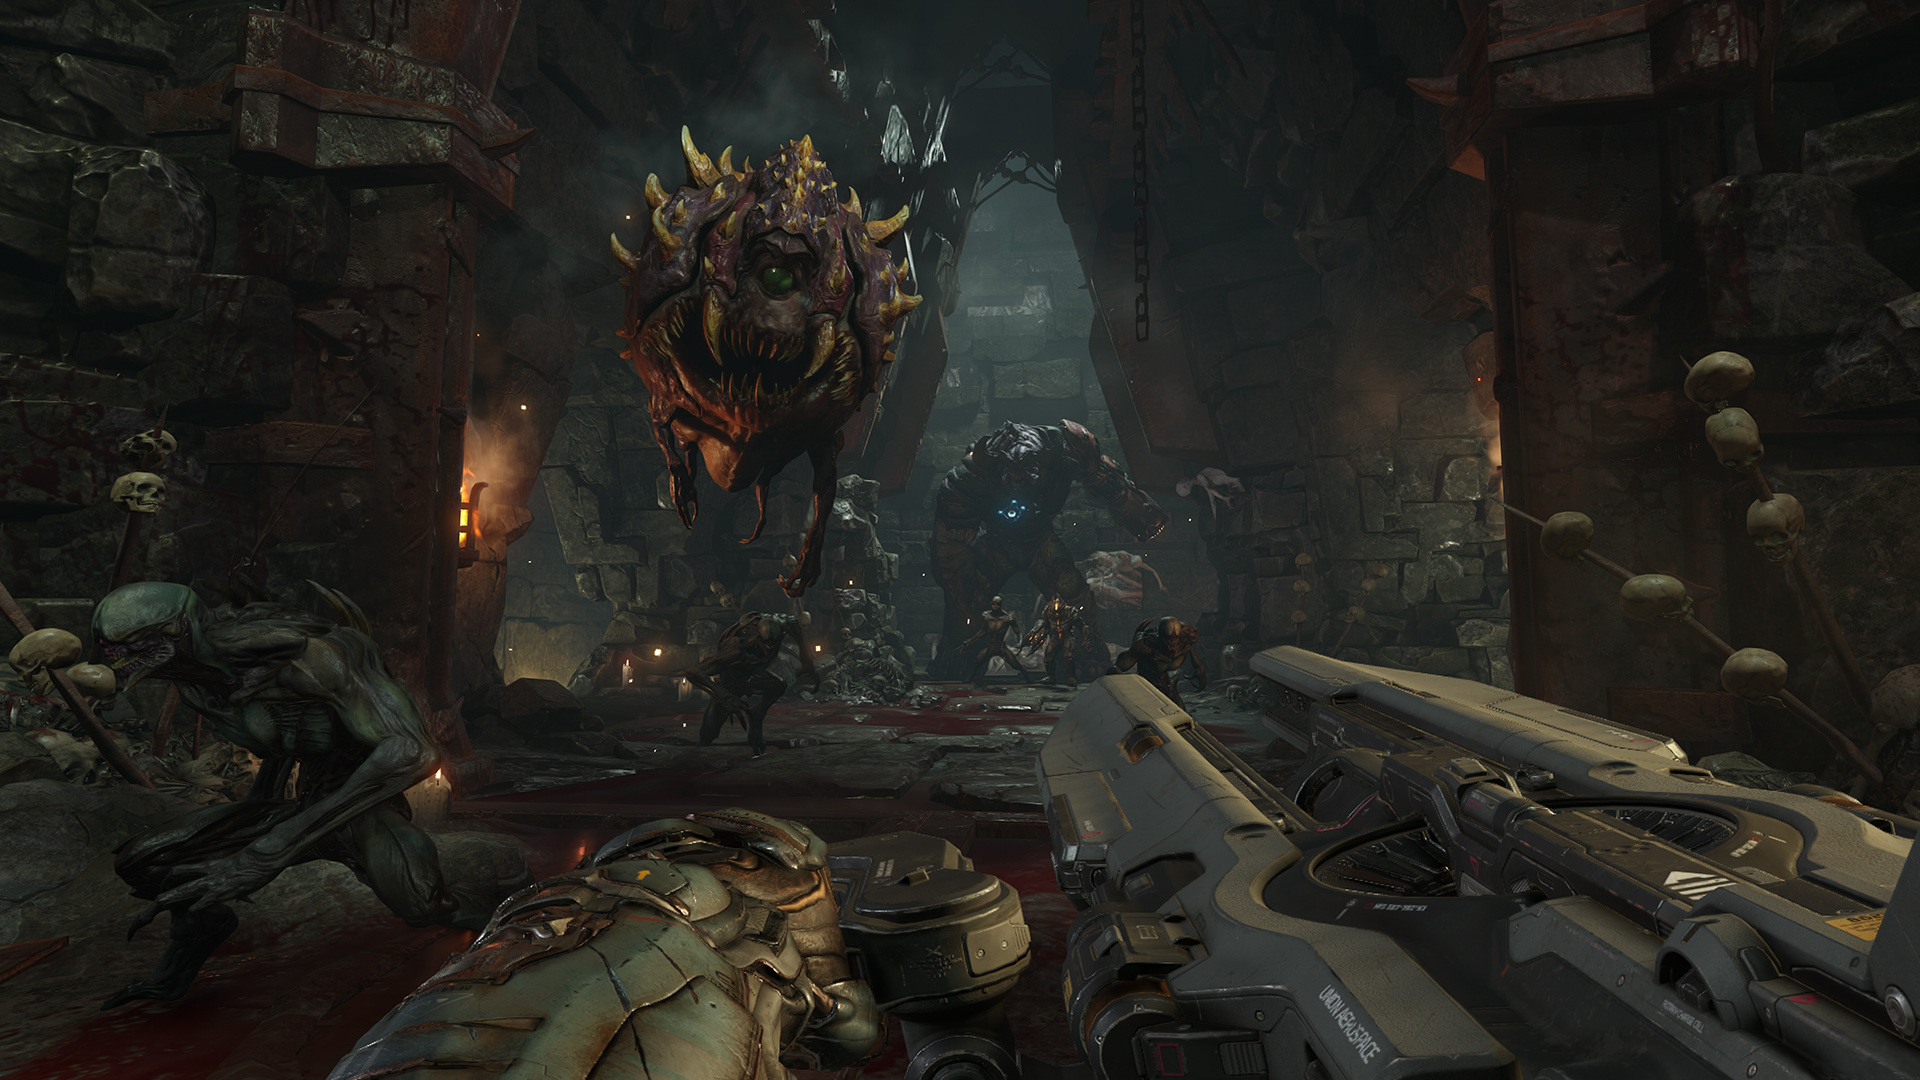 New Screenshots From DOOM - 2015-07-24 12:45:26